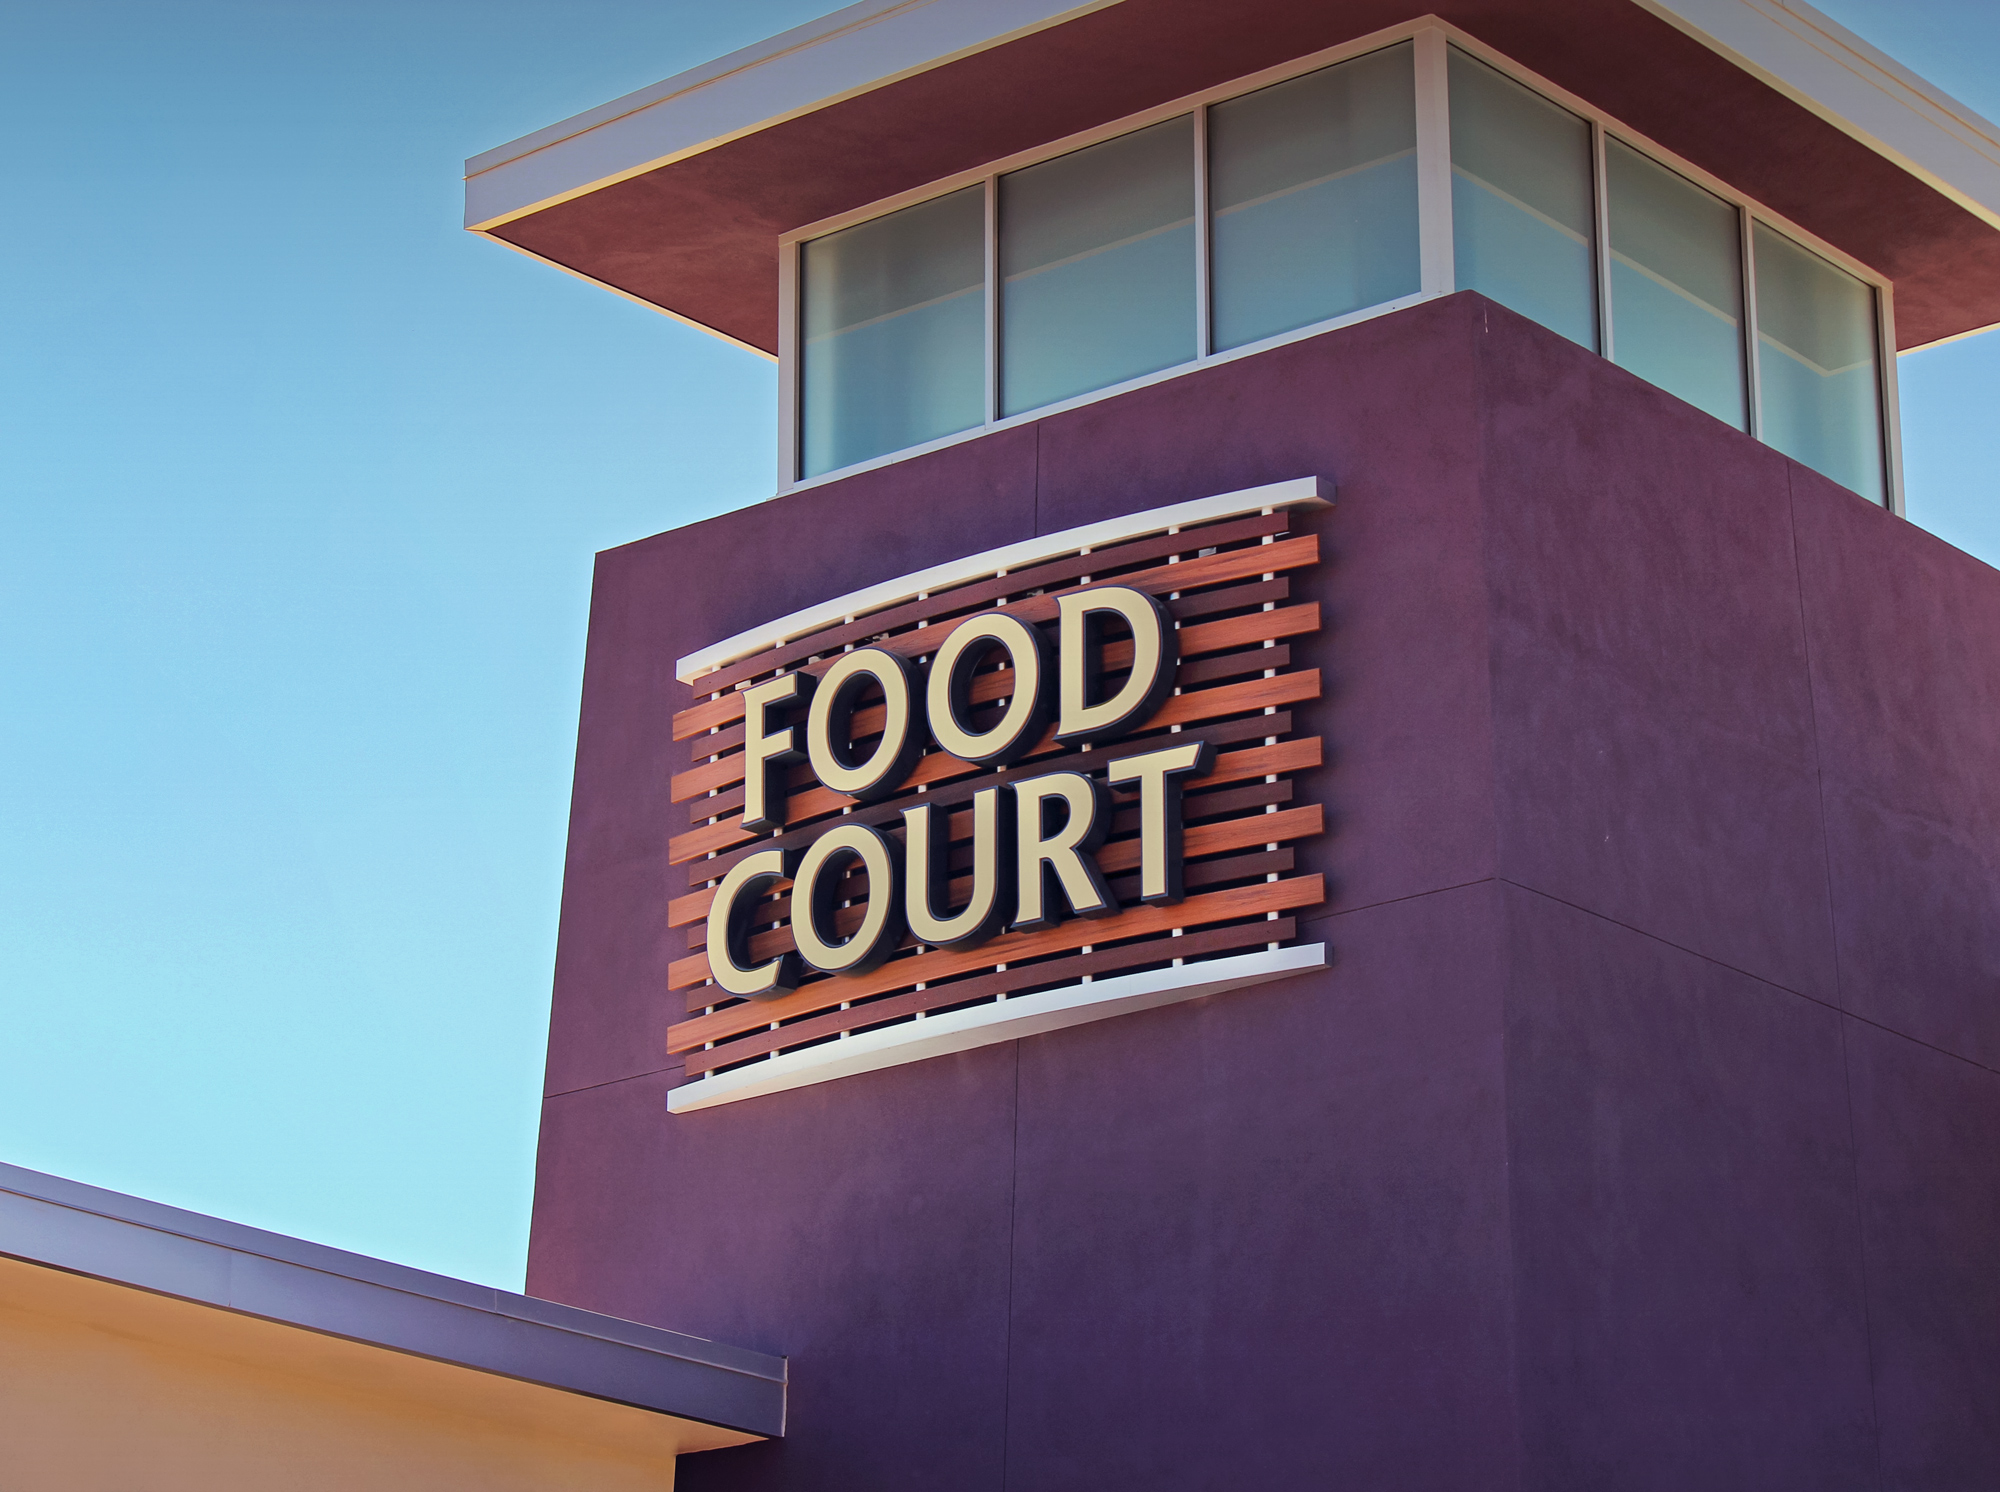 The illuminated tower top sign with wood accents promote the multi-restaurant food court.